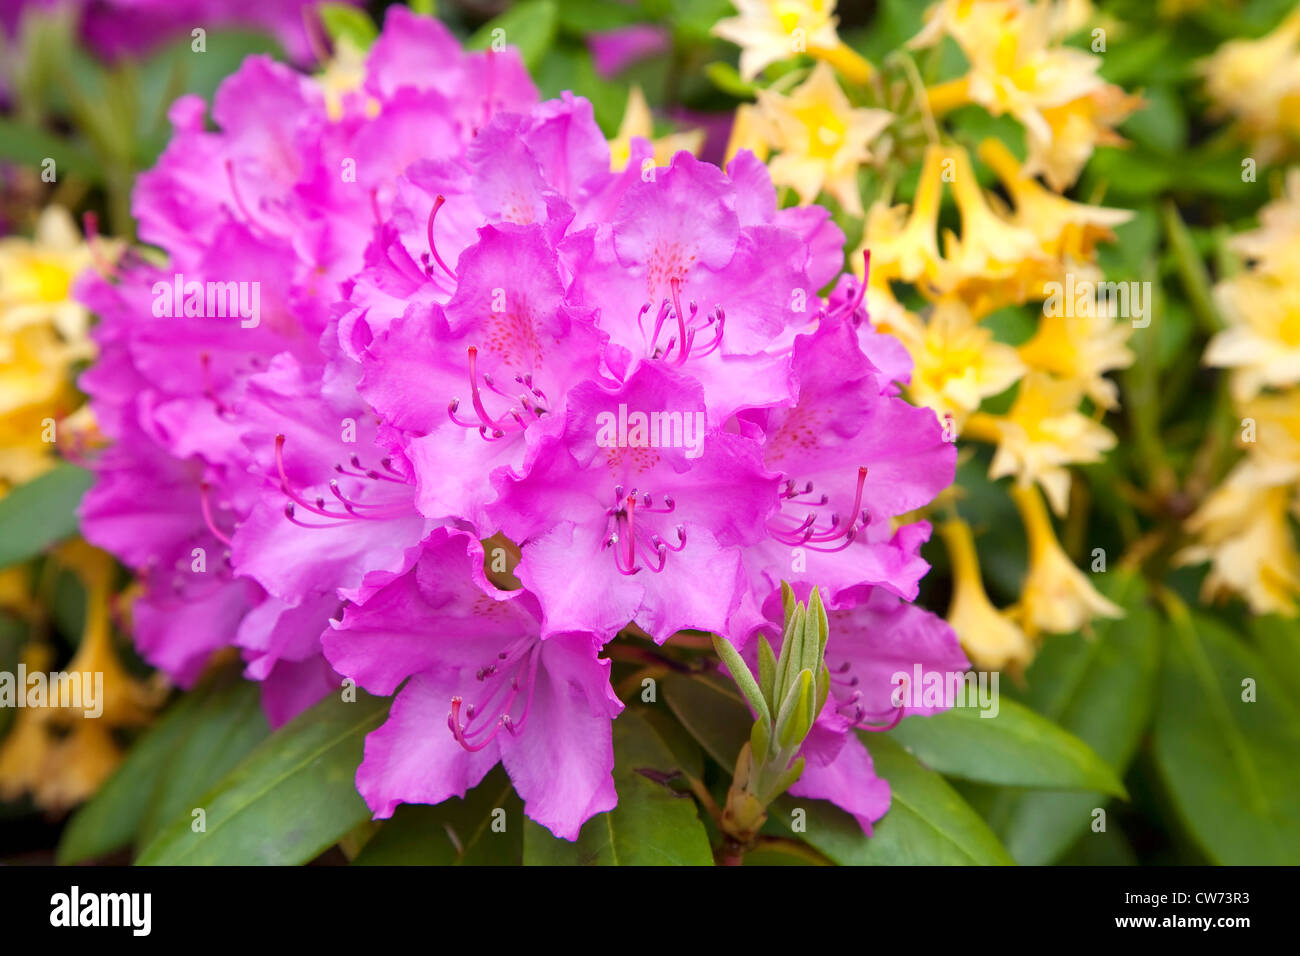 Vibrant pinkish purple rhododendron flowers in the foreground and yellow azalea flowers in the background. - Stock Image